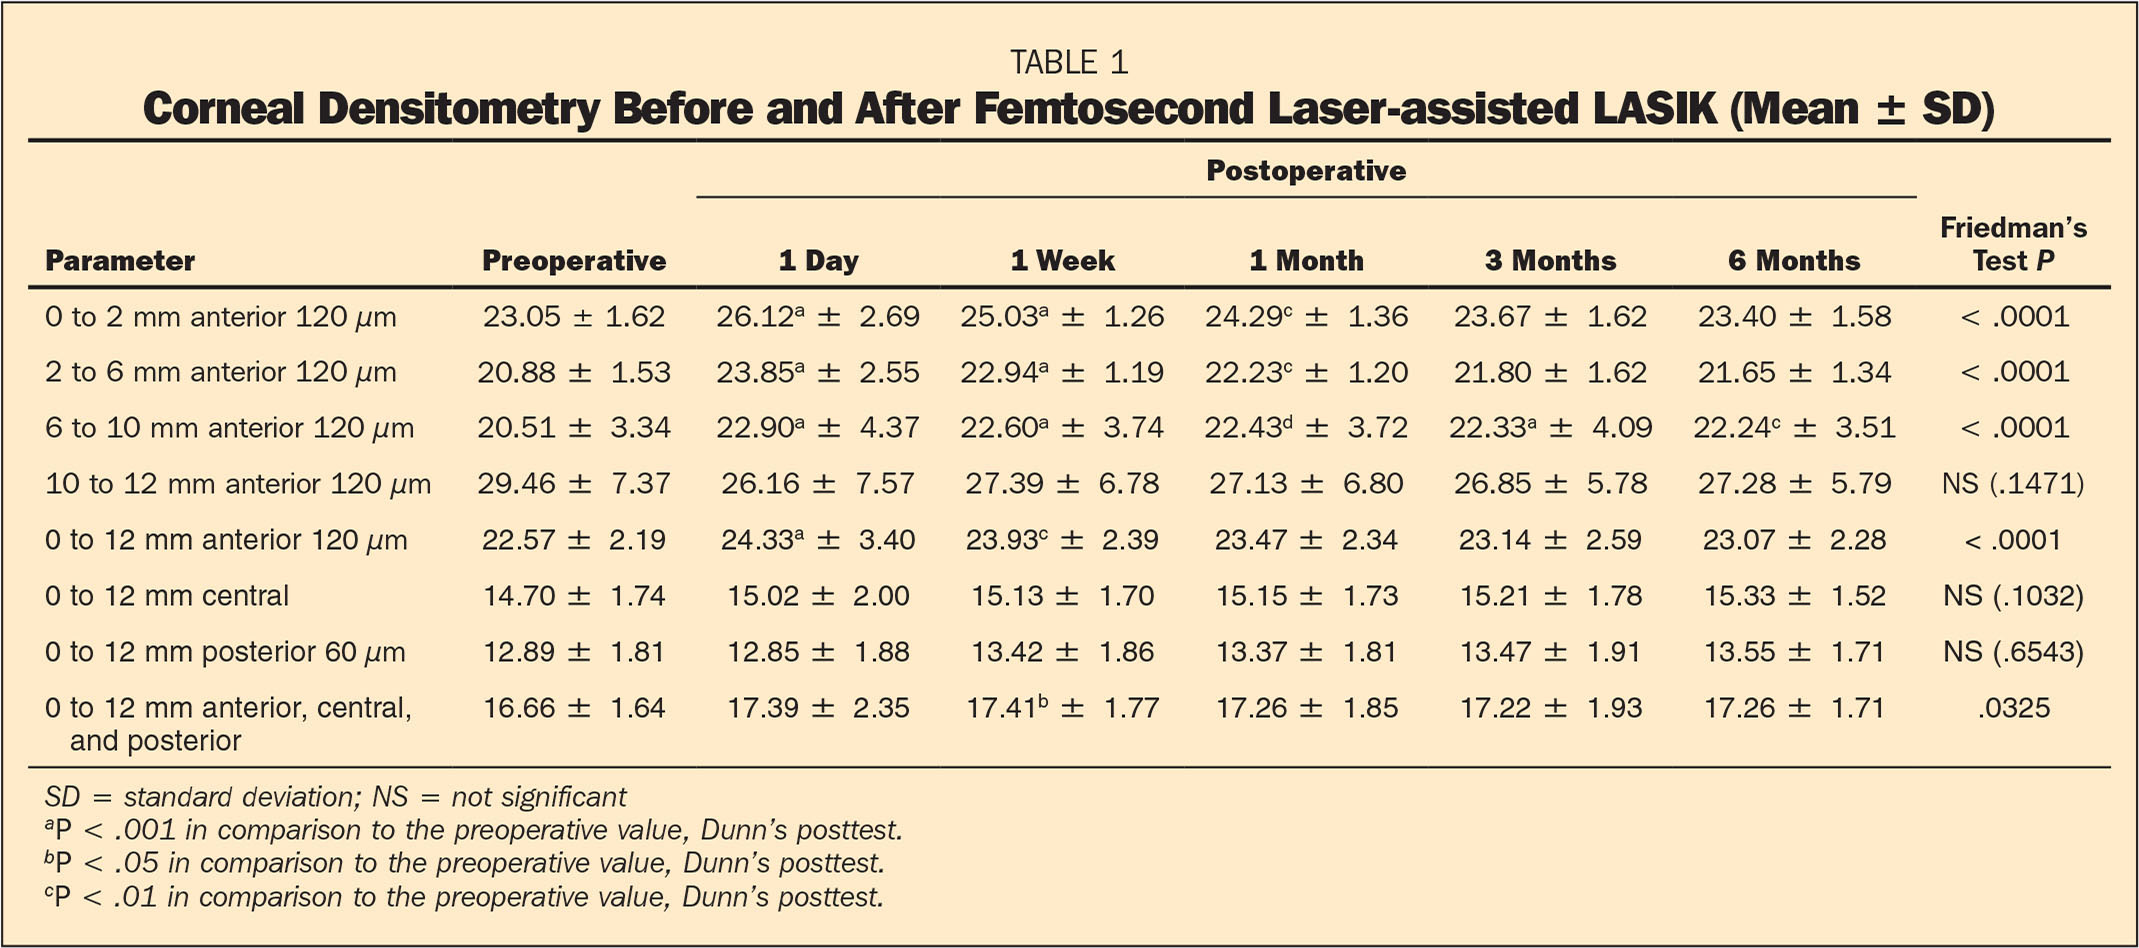 Corneal Densitometry Before and After Femtosecond Laser-assisted LASIK (Mean ± SD)